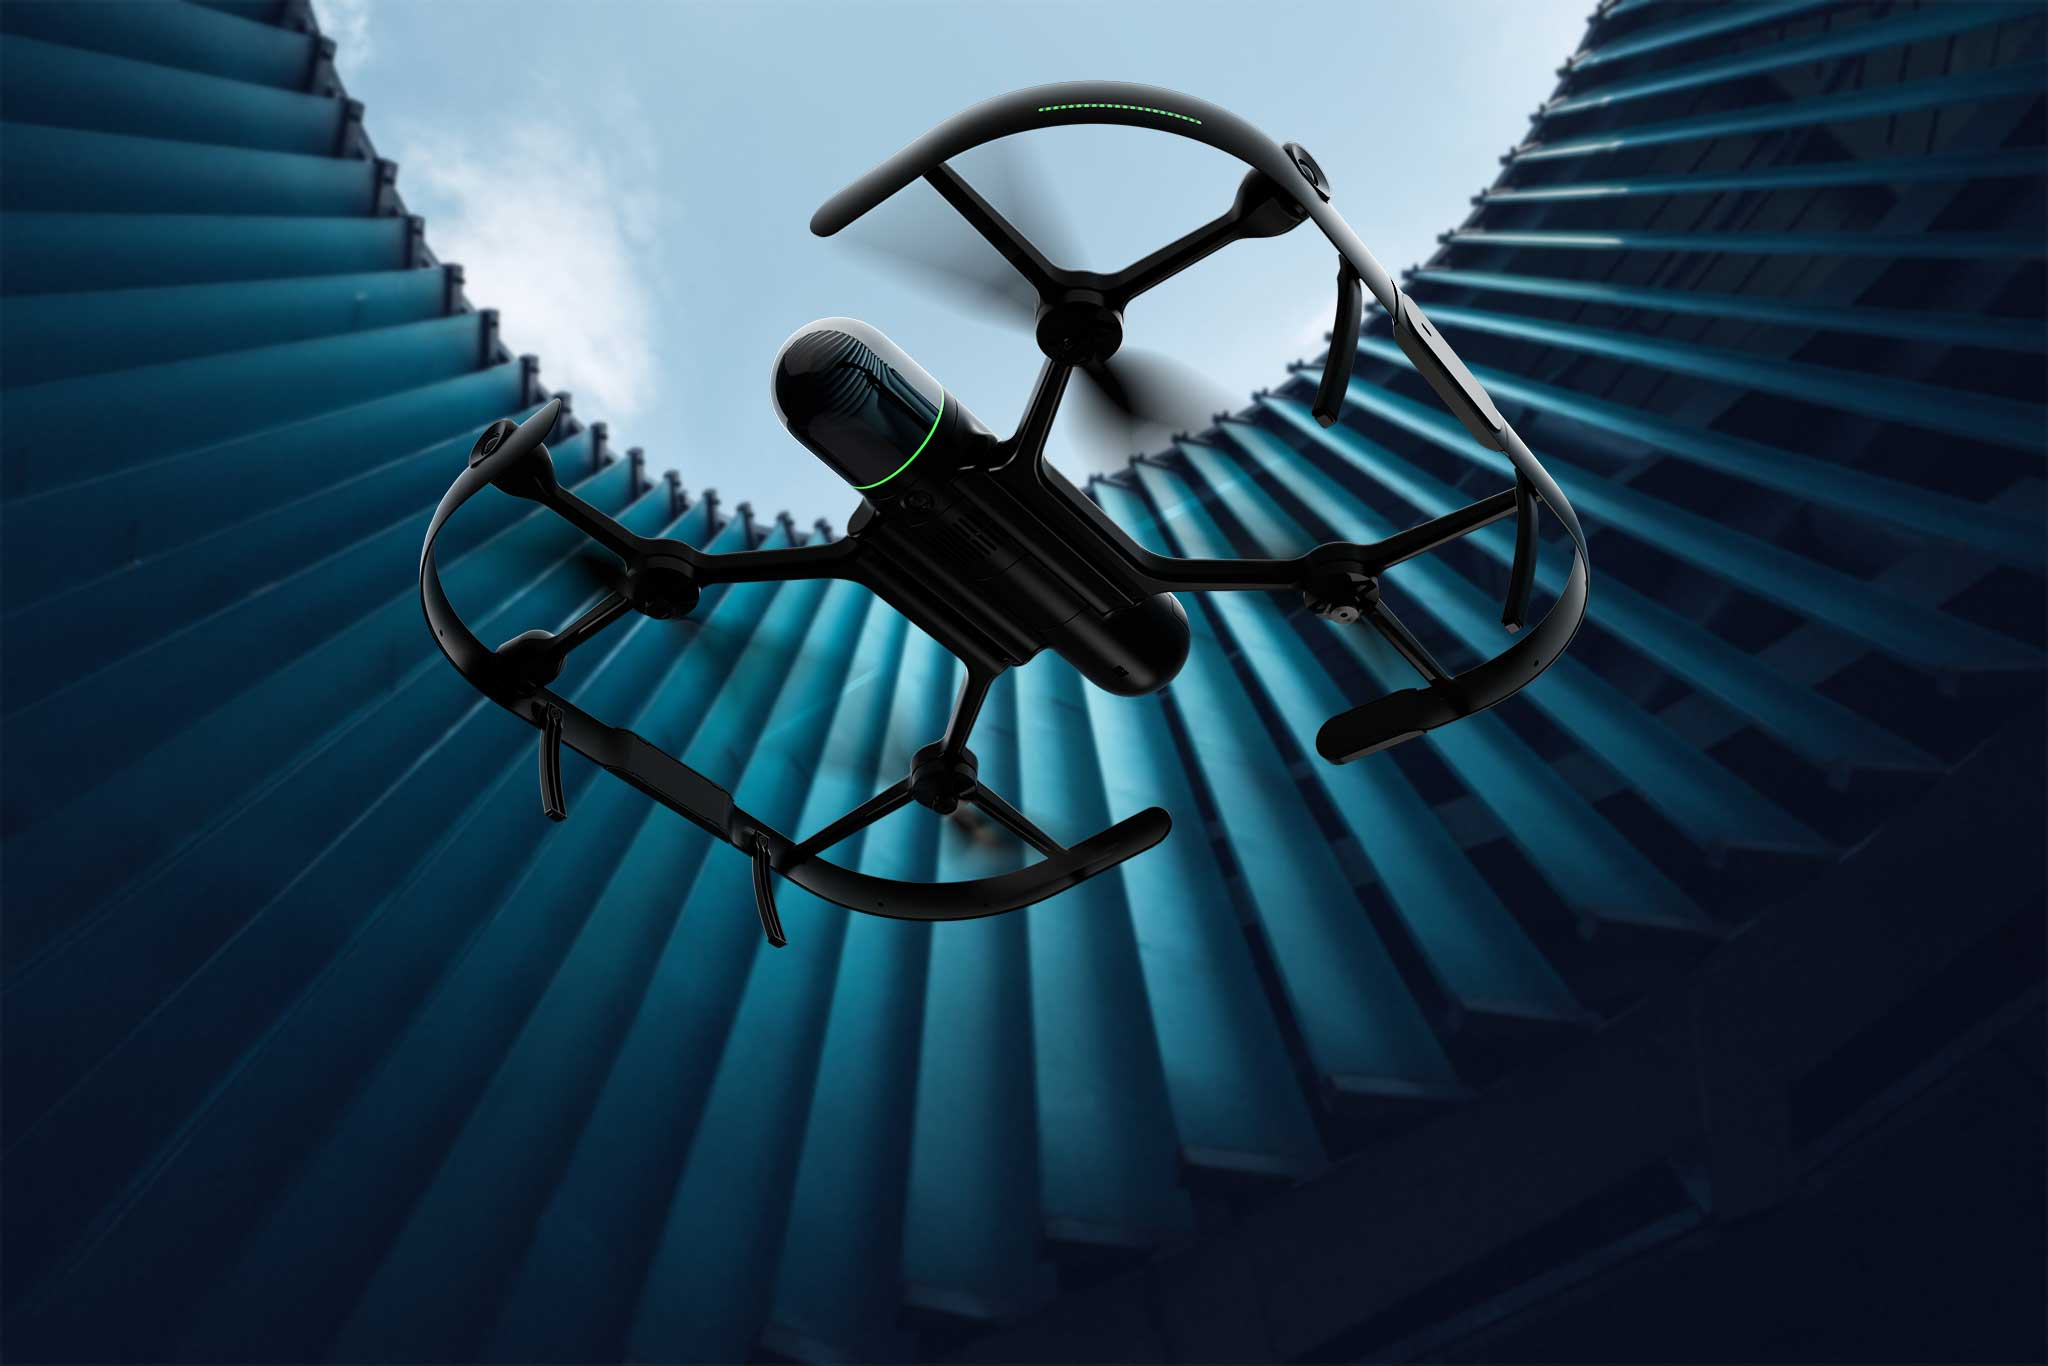 Bottom view of a BLK2FLY flying in a modern roof opening